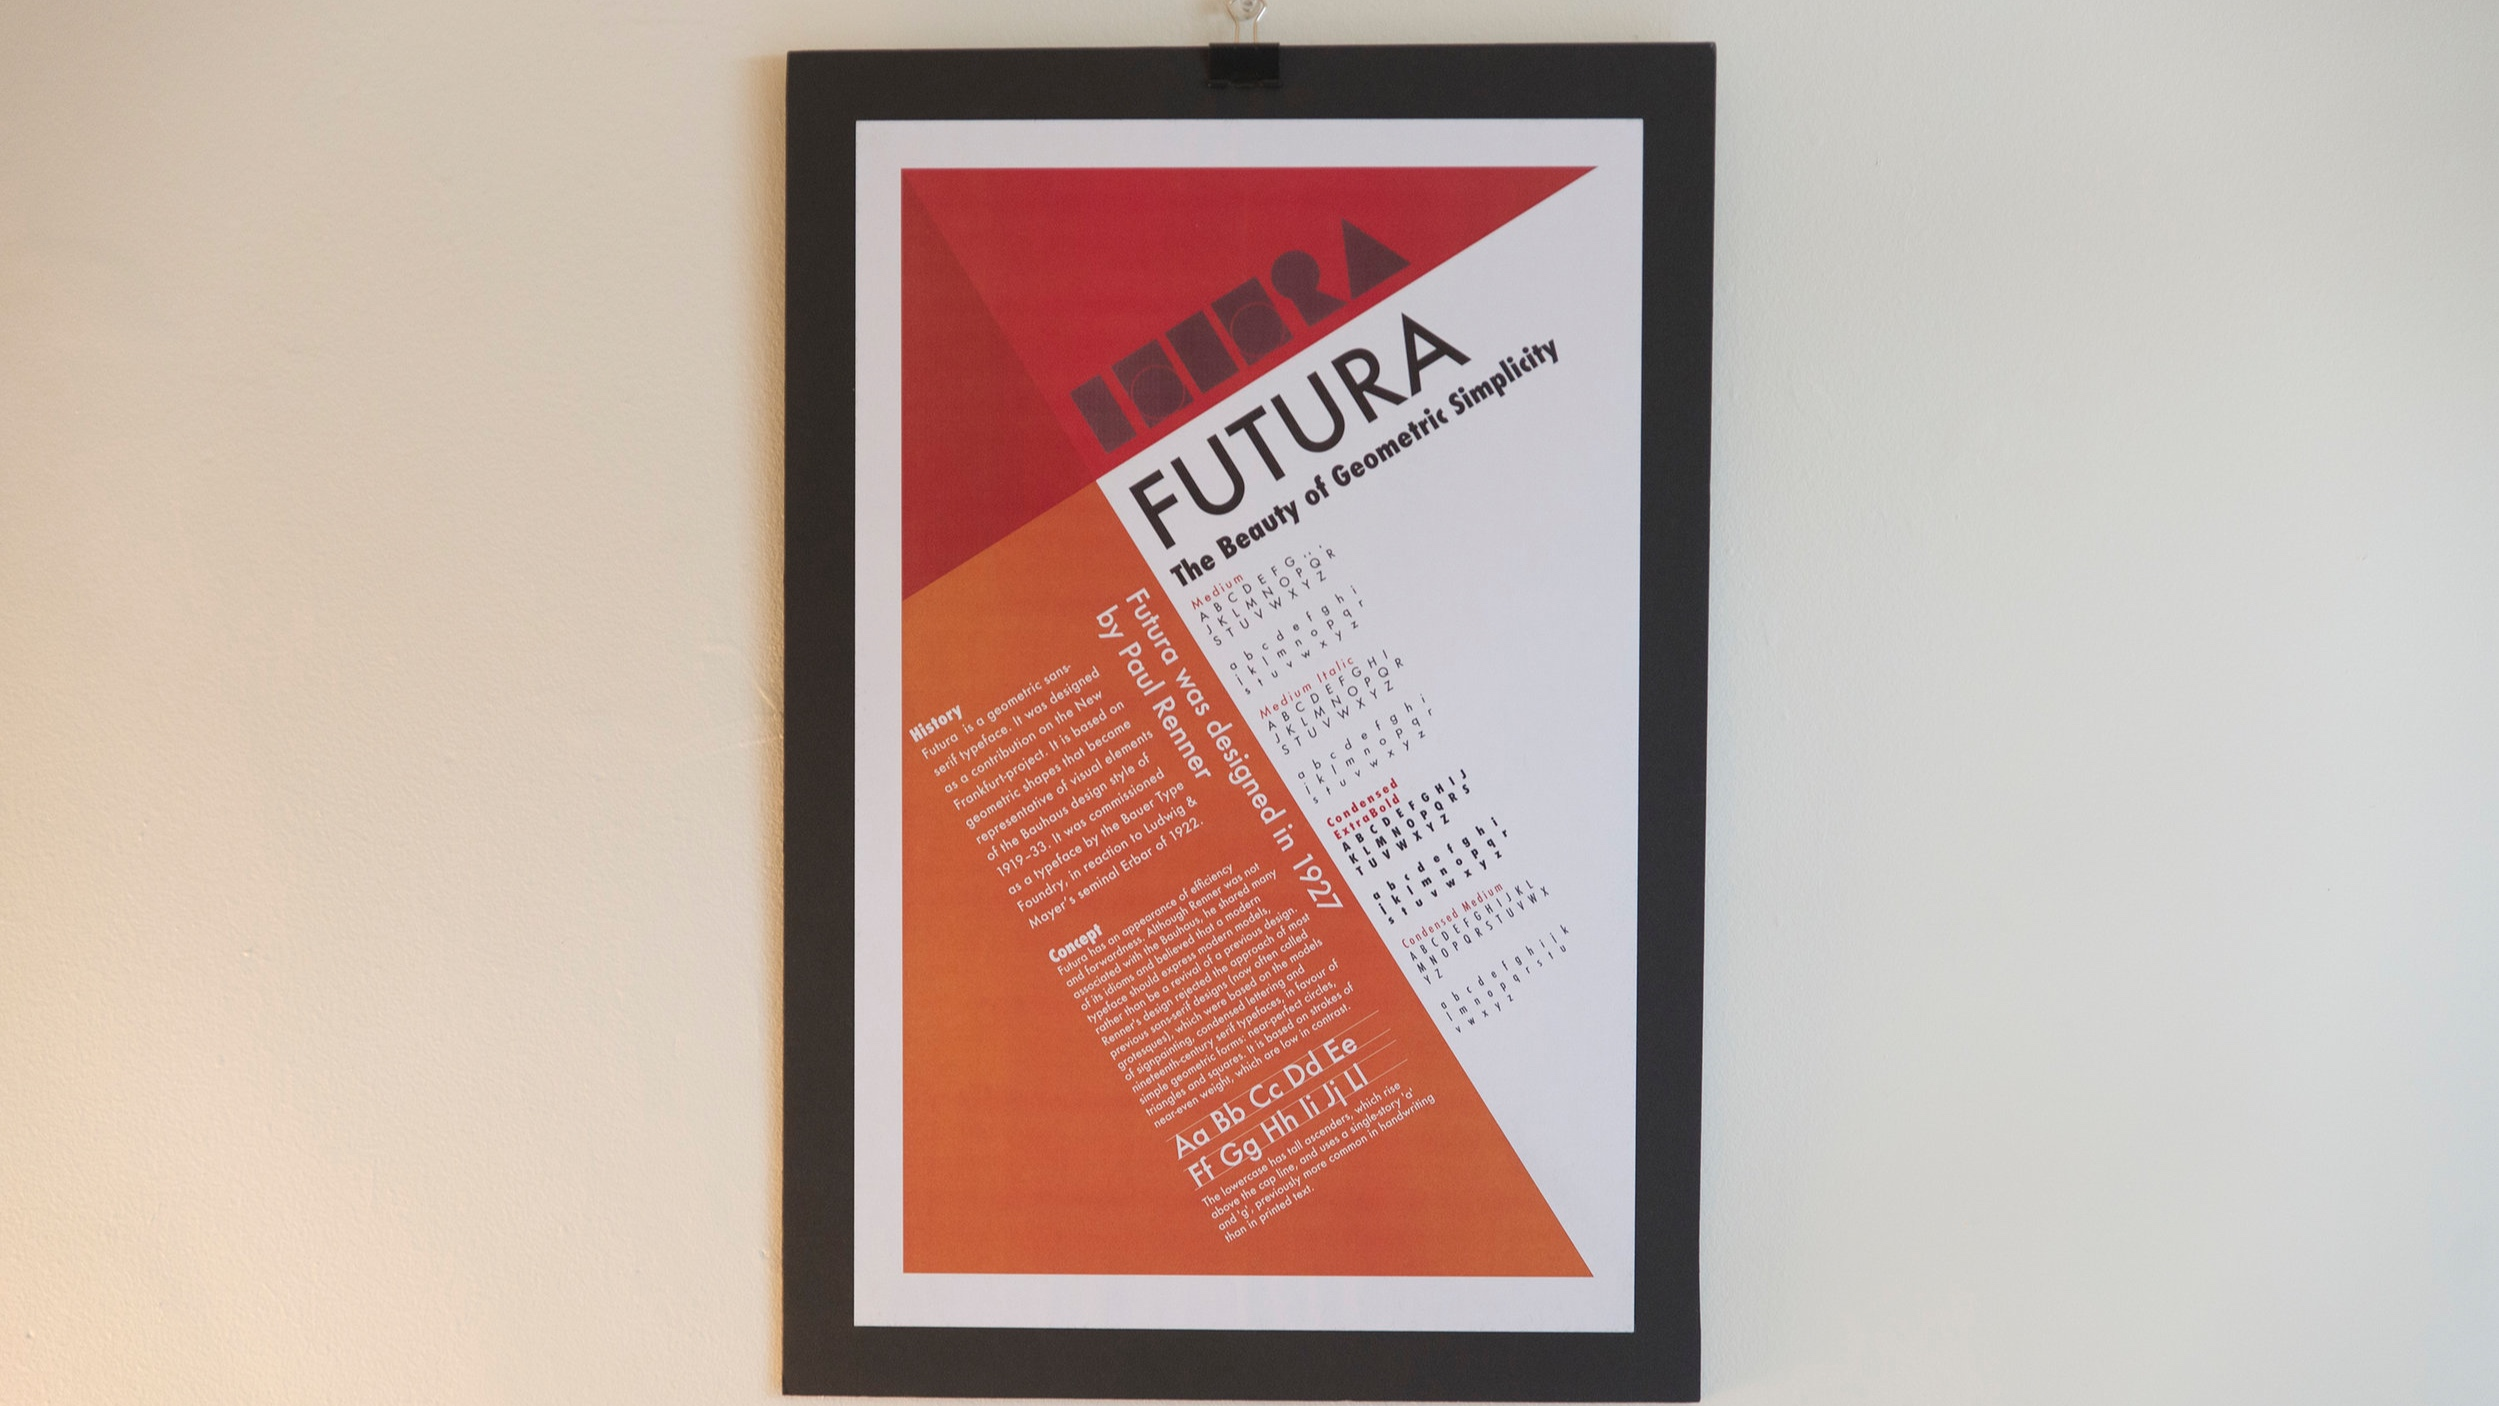 Specimen poster design - Specimen poster for the typeface Futura.